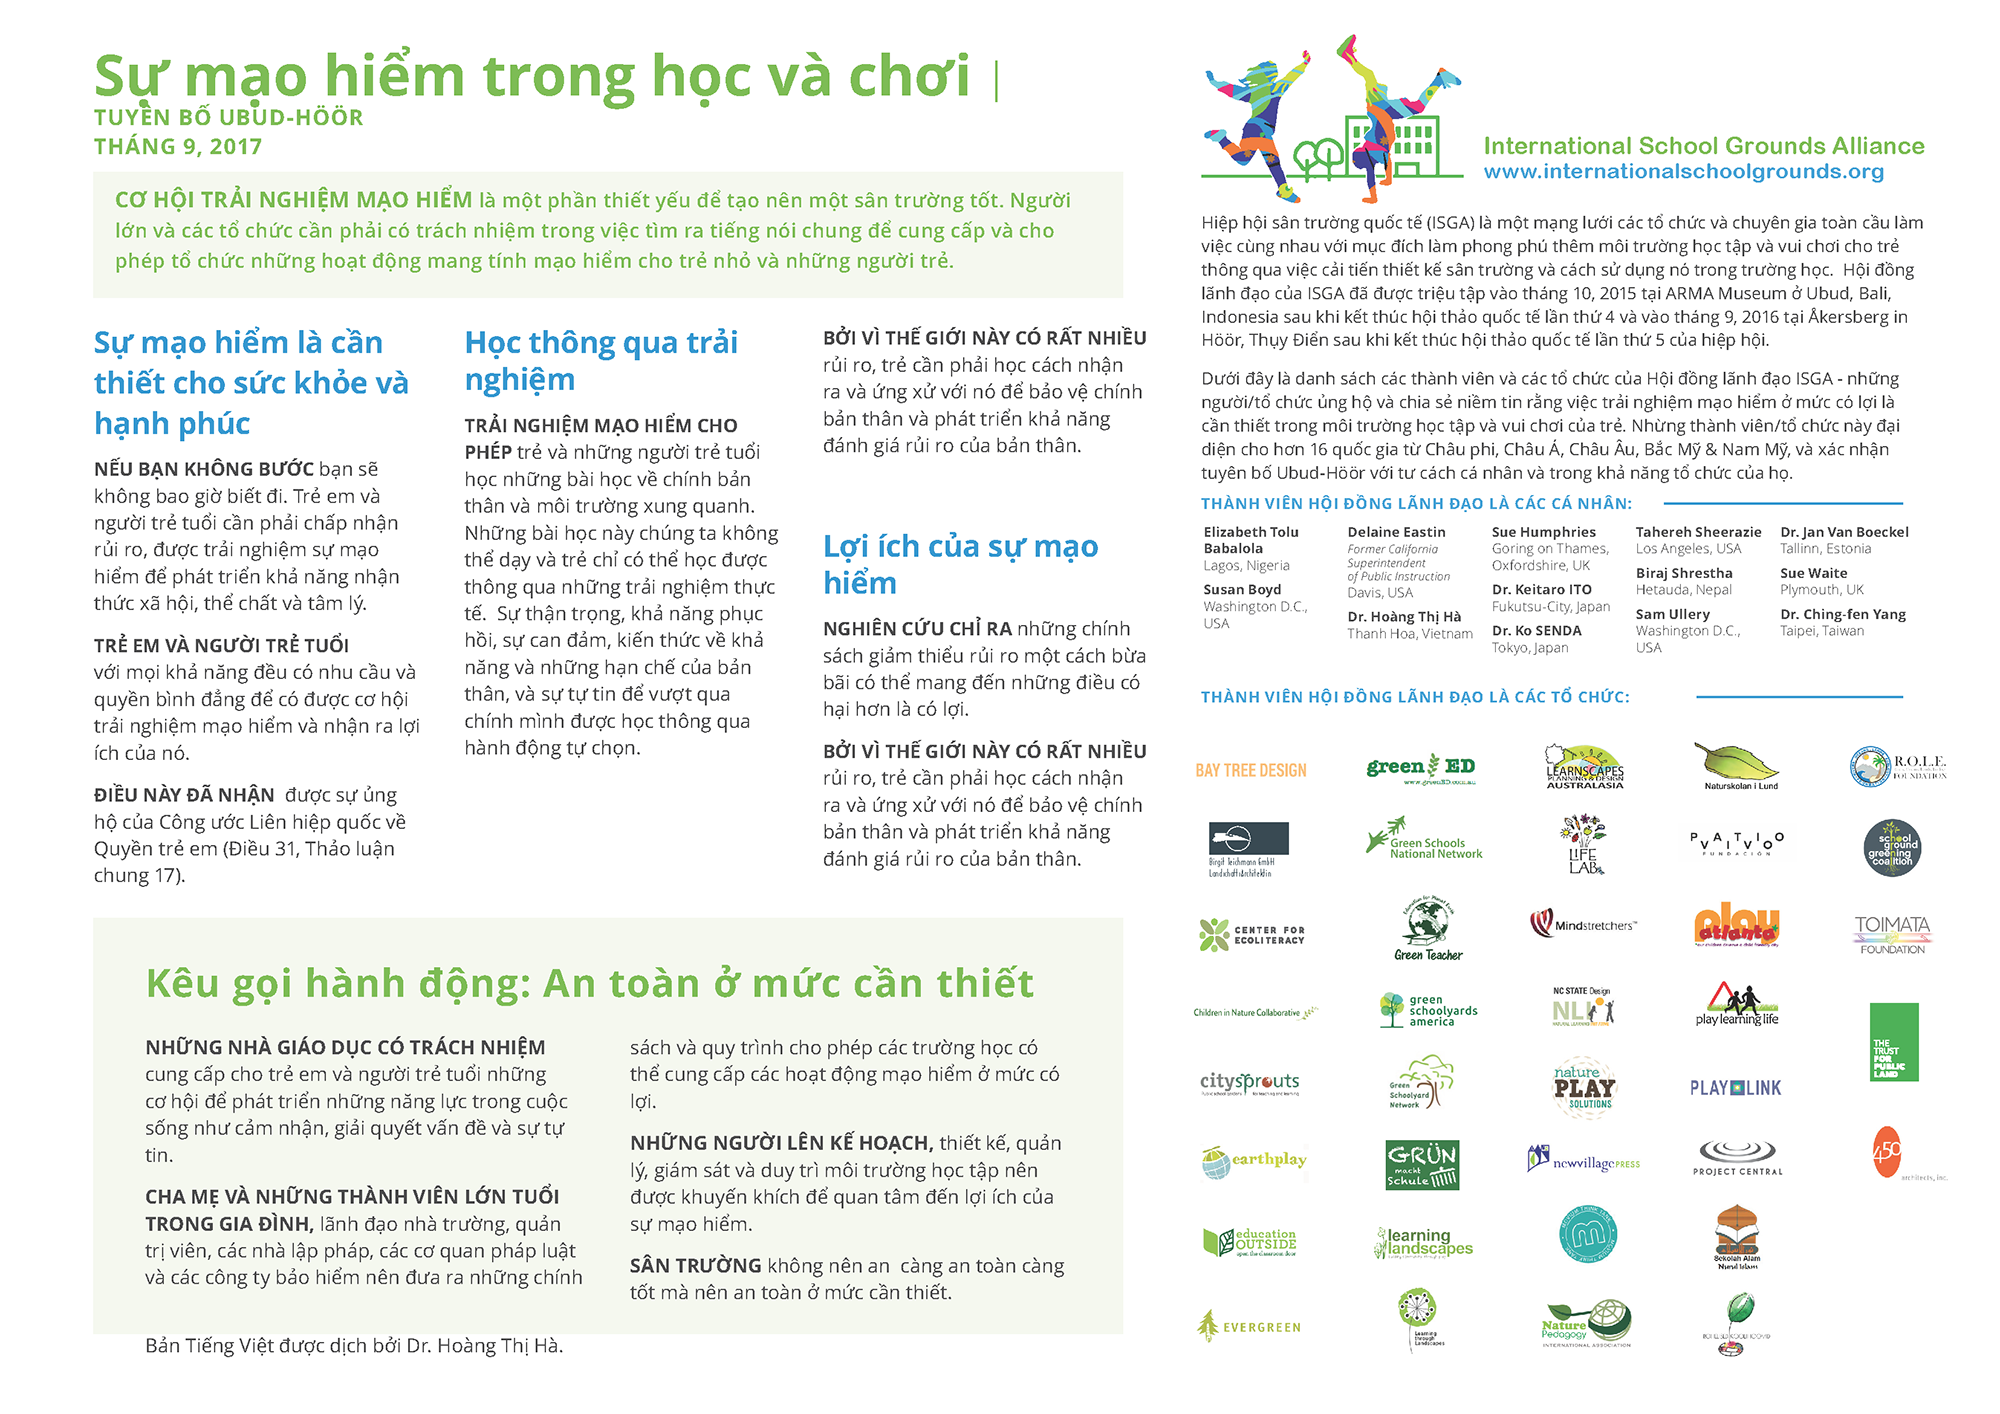 Click here to download in Vietnamese / Tiếng Việt.